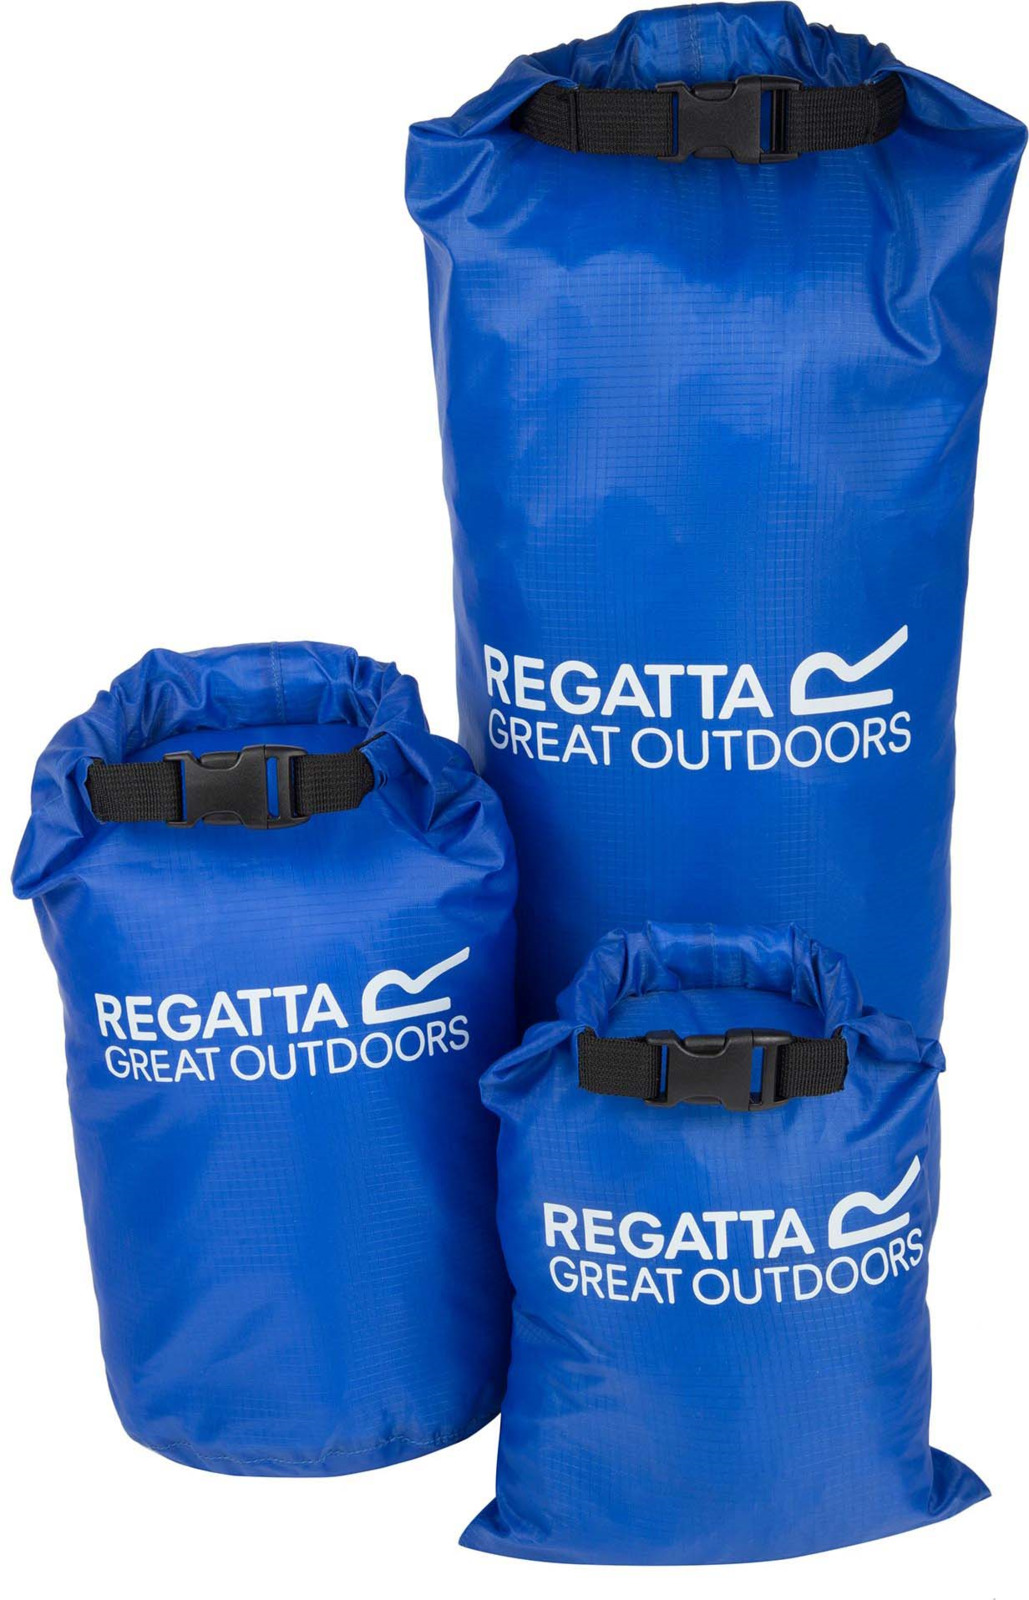 Гермочехол Regatta Dry Bag Set, RCE183, синий